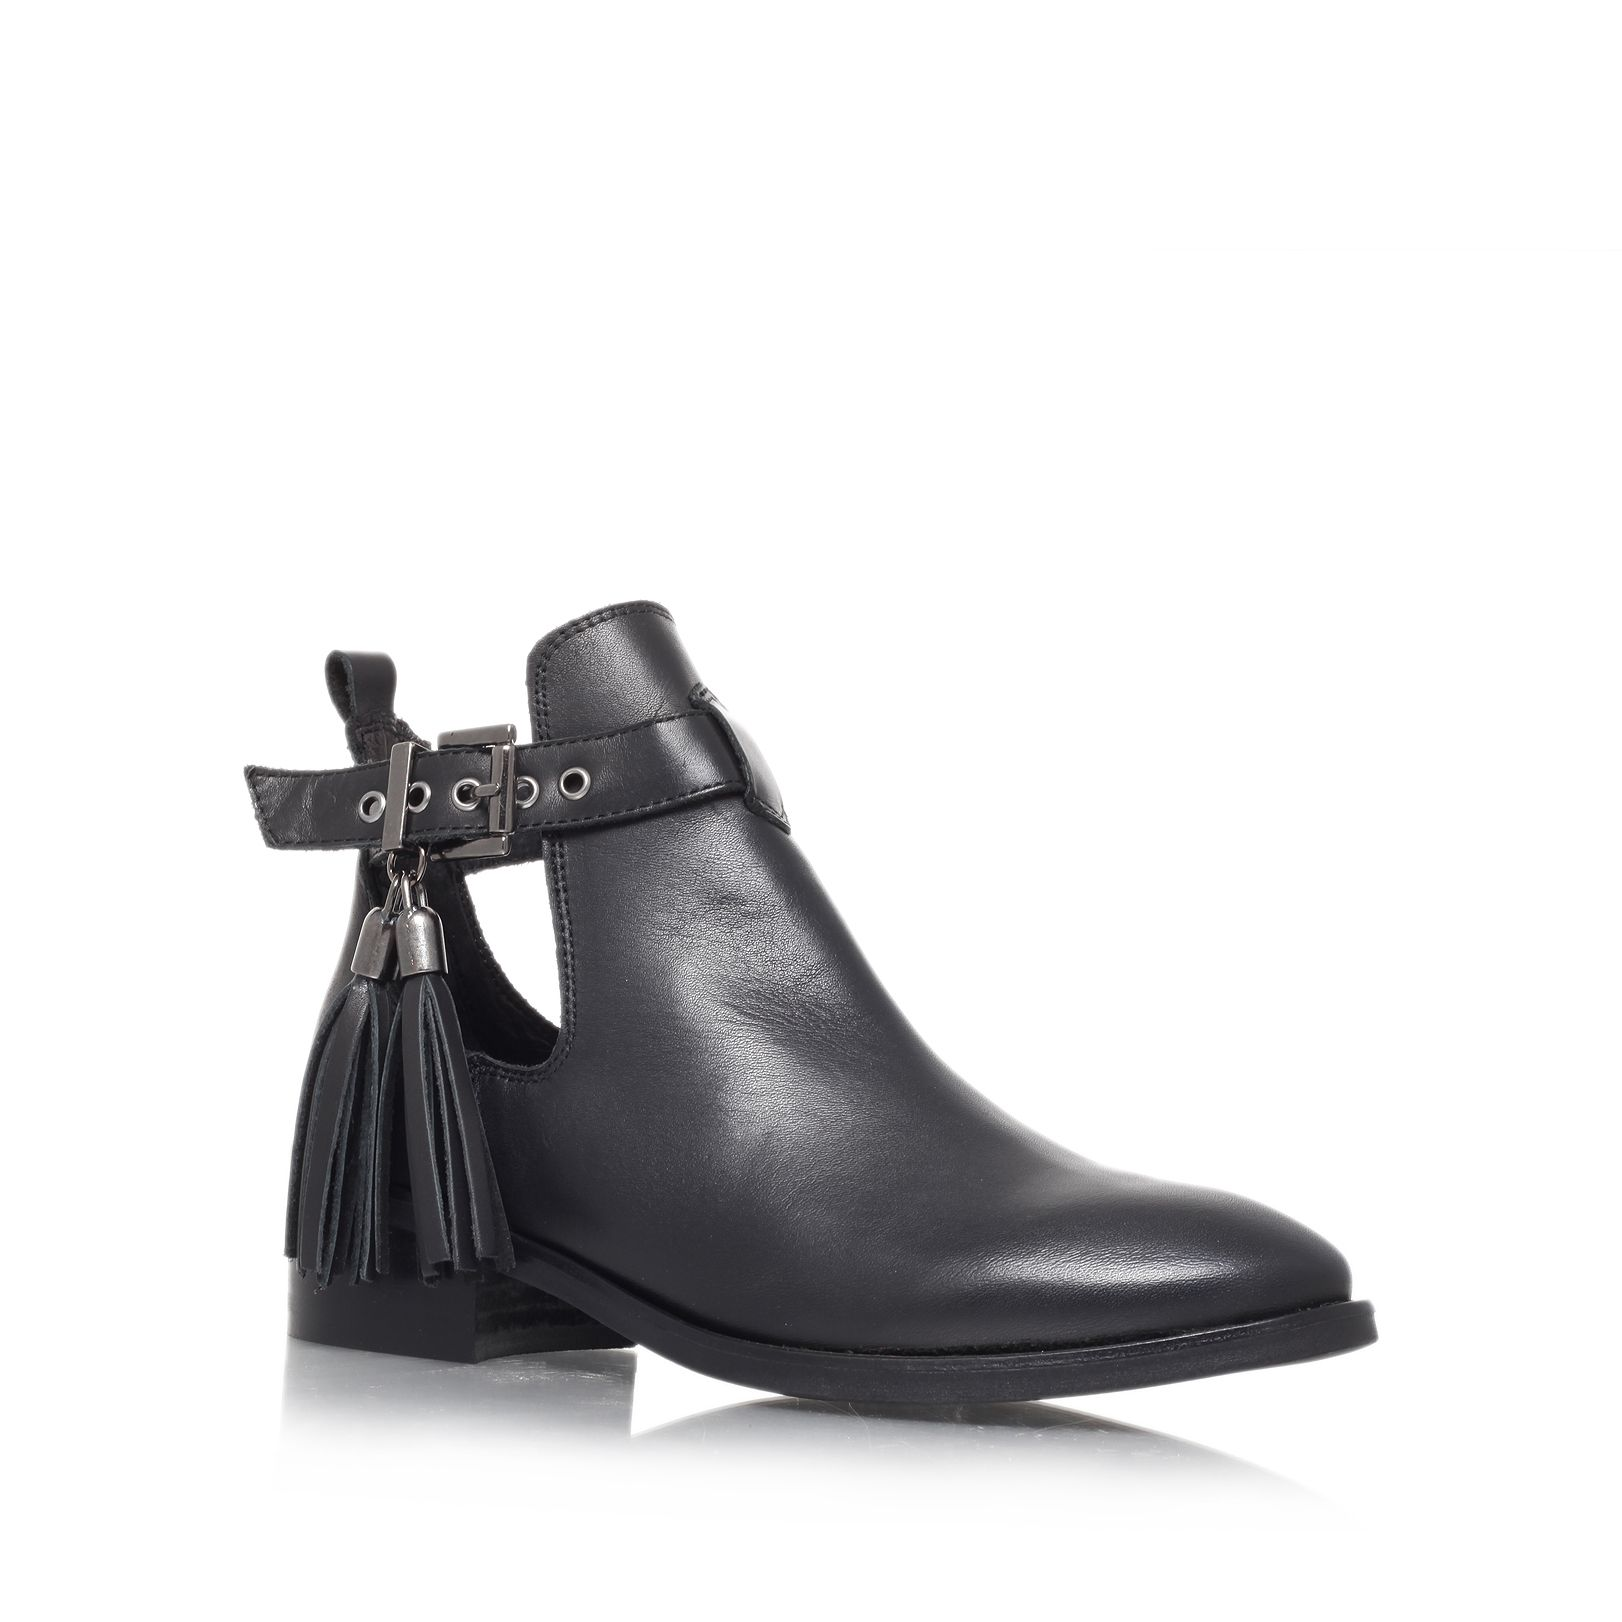 Steep low heel ankle boots